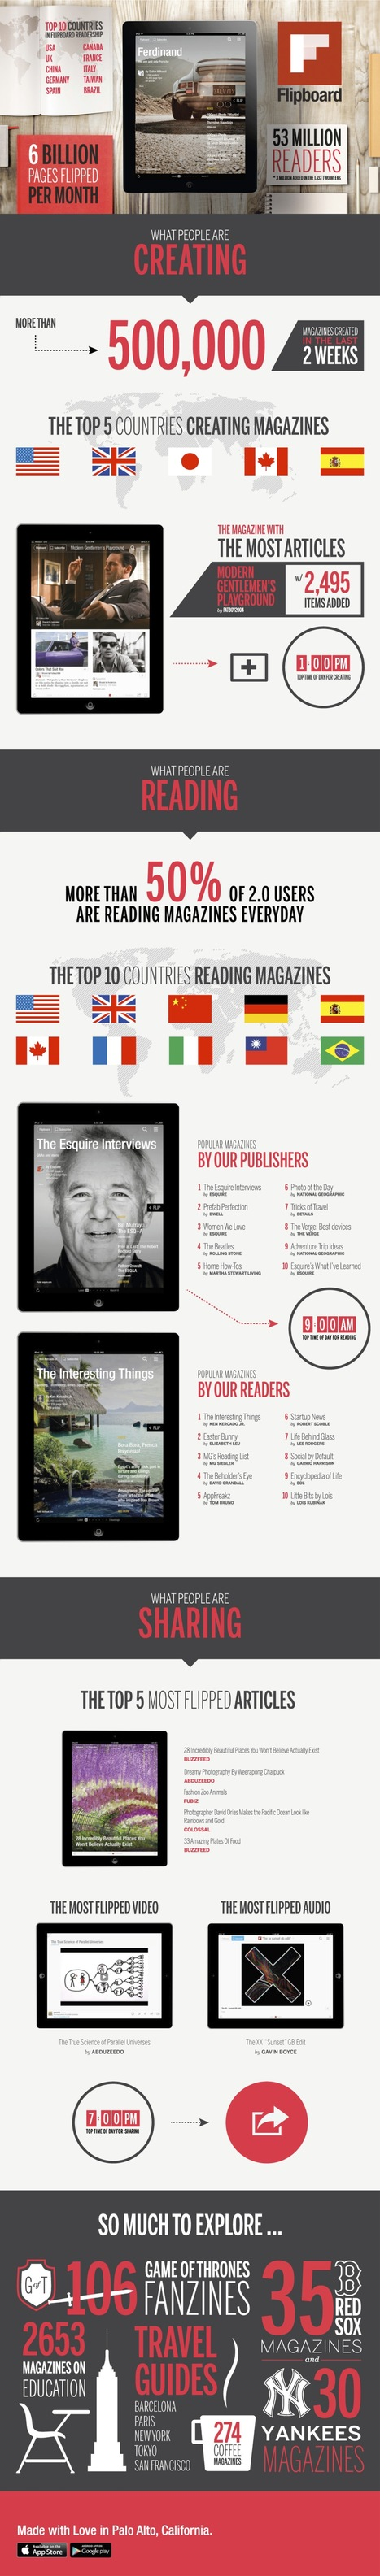 500,000 Flipboard magazines created in 2 weeks (Infographic) | Journalism in the digital era | Scoop.it